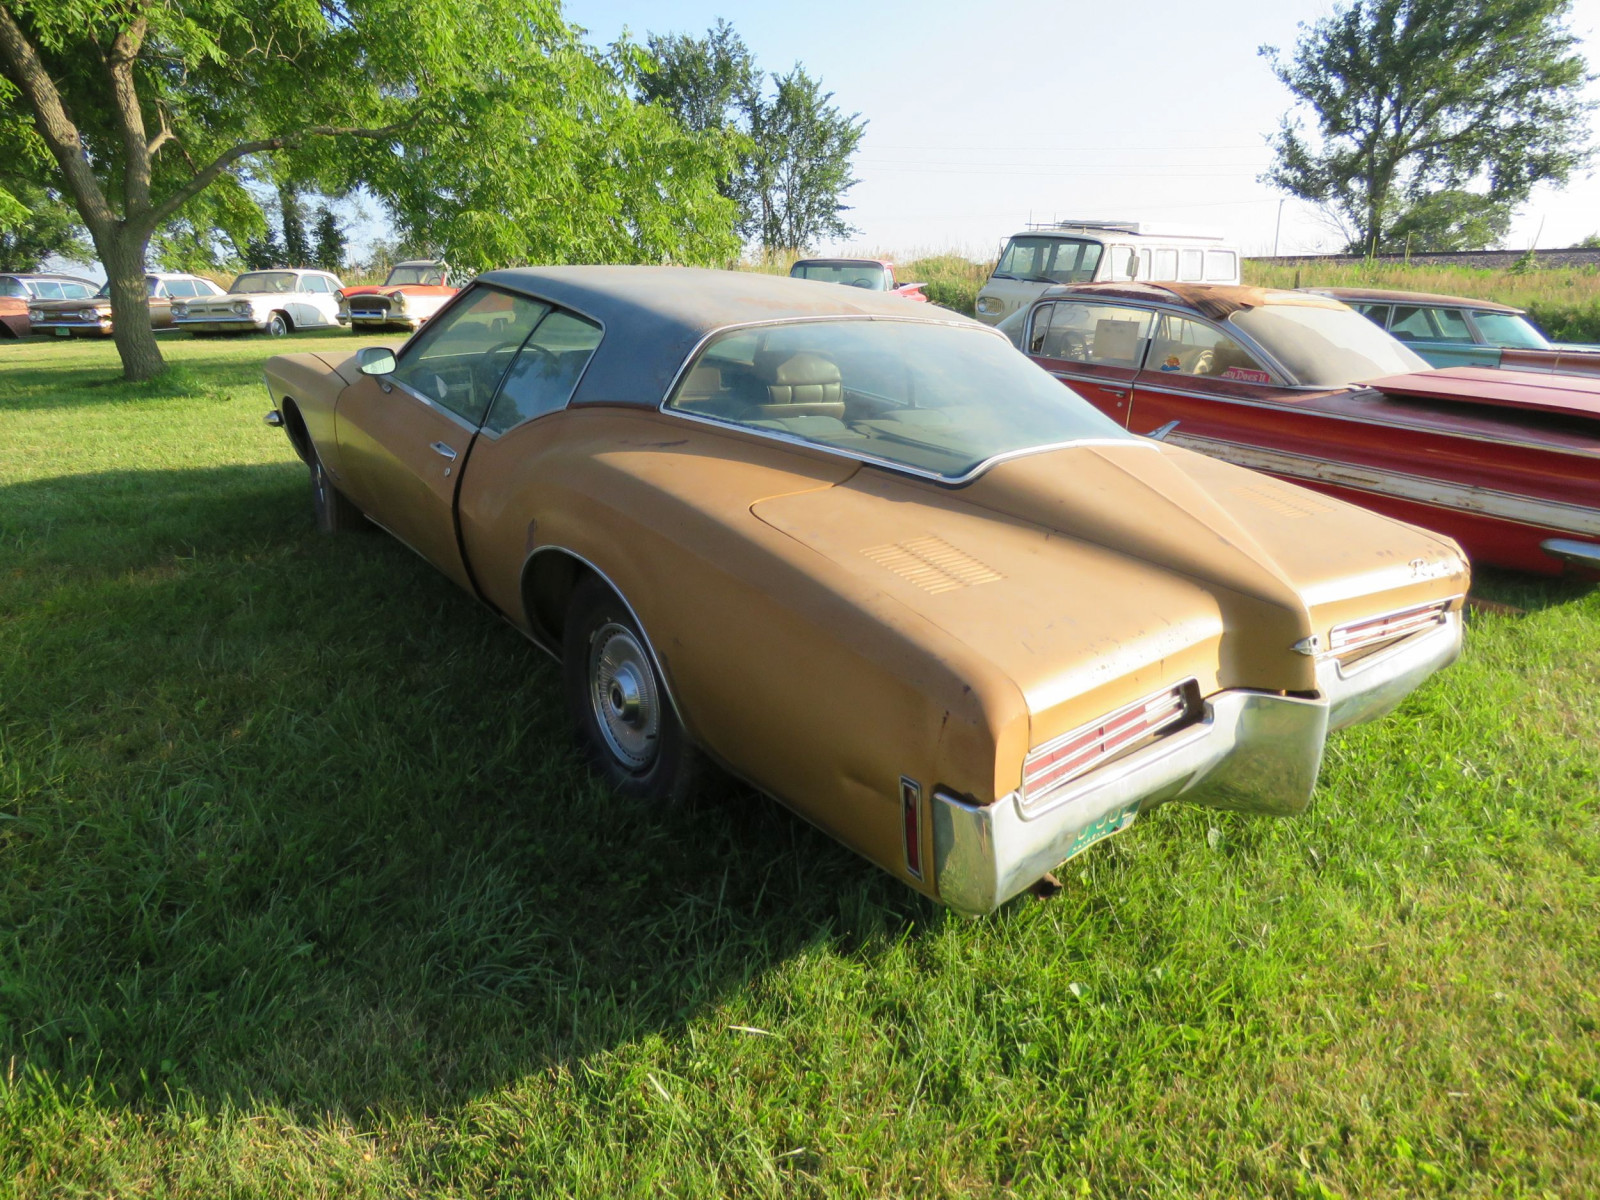 1971 Buick Boat tail Riviera - Image 6